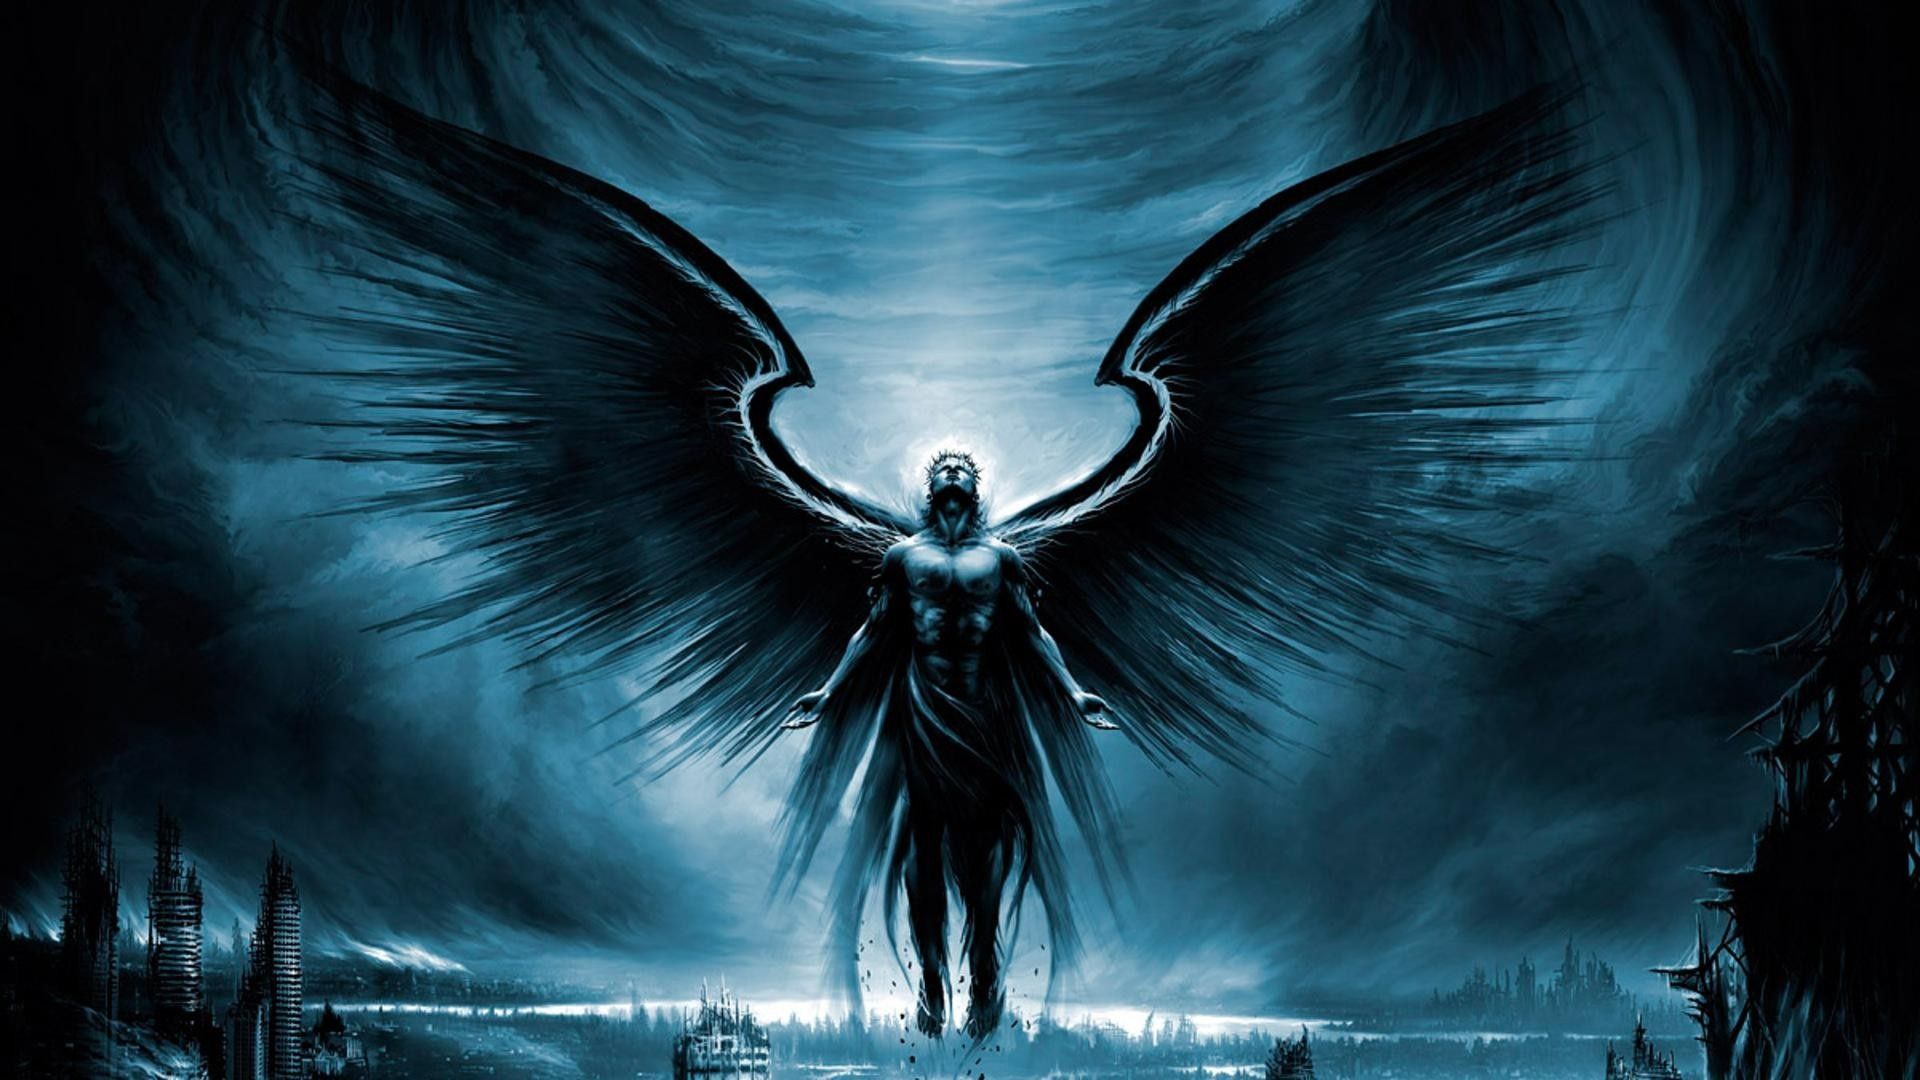 Angels Could Look Like This Dark Angel Wallpaper Angel Pictures Angel Wallpaper